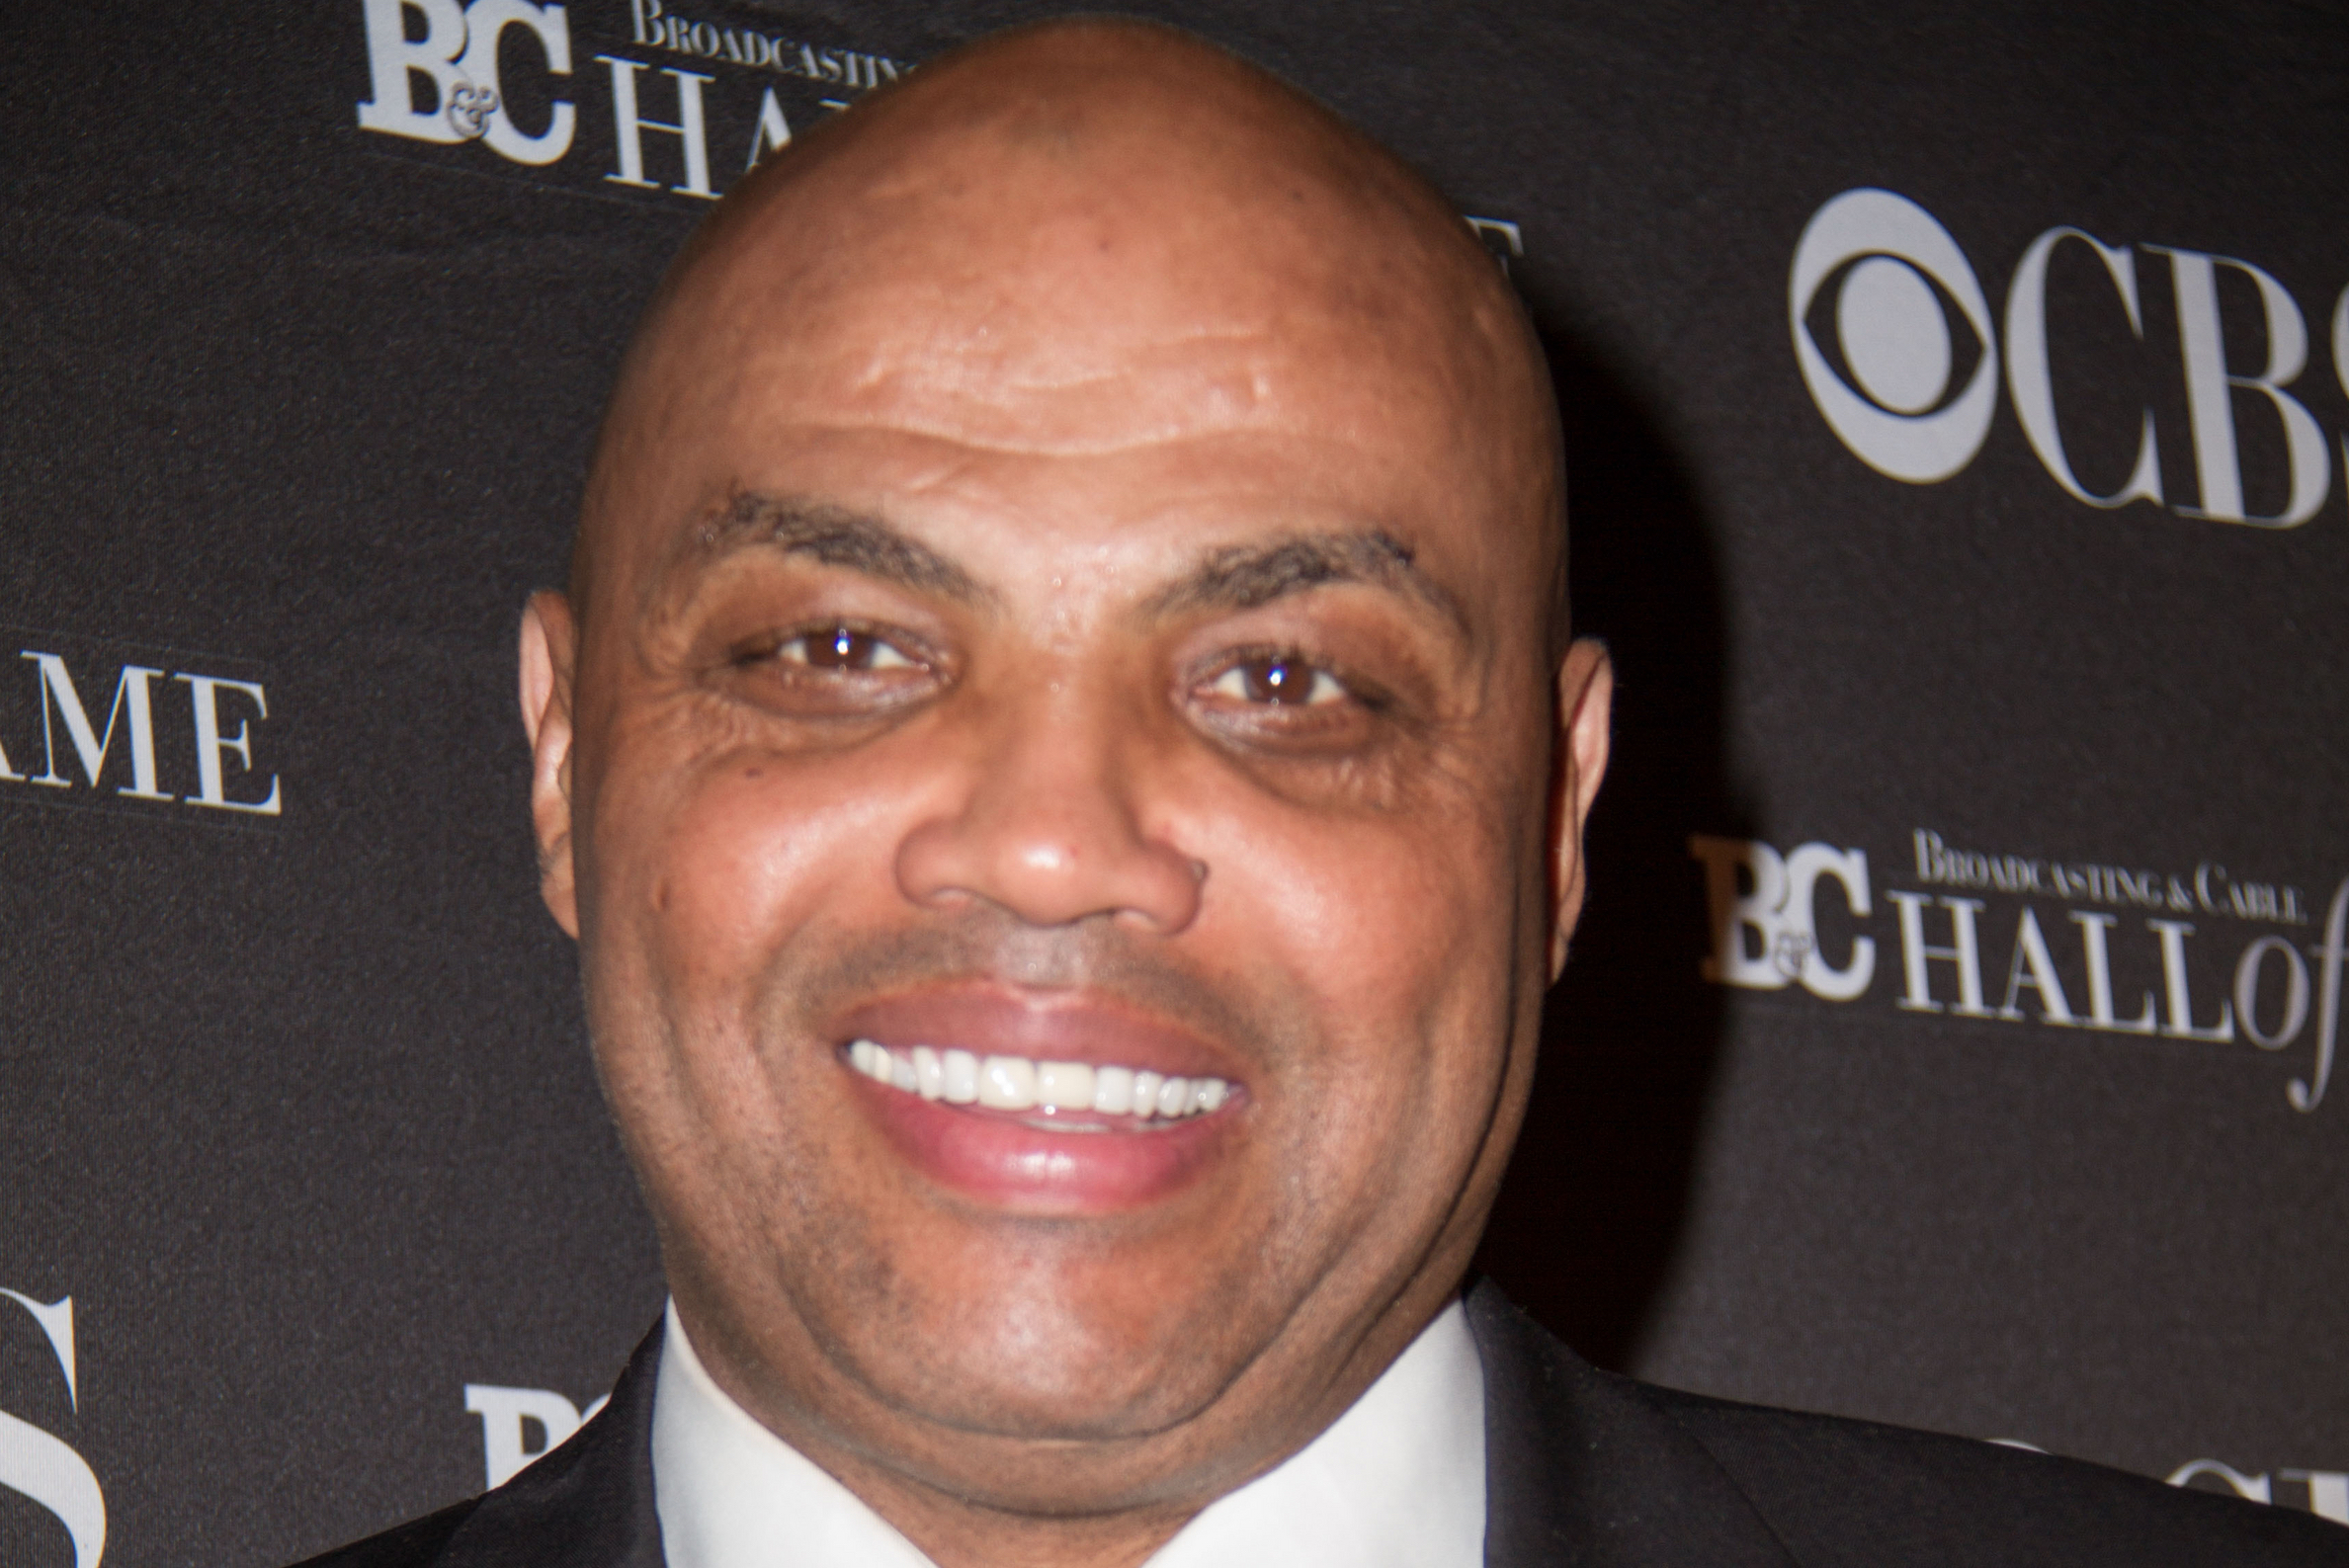 10/18/2016 - Charles Barkley - Broadcasting and Cable Hall of Fame 26th Anniversary Gala - Waldorf Astoria New York, 301 Park Avenue - New York City, NY, USA - Keywords: Vertical, 2016 Broadcasting & Cable Hall Of Fame 26th Anniversary Gala, Radio, Award, TV Show, Television Show, Photography, Portrait, Arts Culture and Entertainment, Arrival, Attending, Celebrities, Celebrity, Person, People Orientation: Portrait Face Count: 1 - False - Photo Credit: Lisa Holte / PRPhotos.com - Contact (1-866-551-7827) - Portrait Face Count: 1